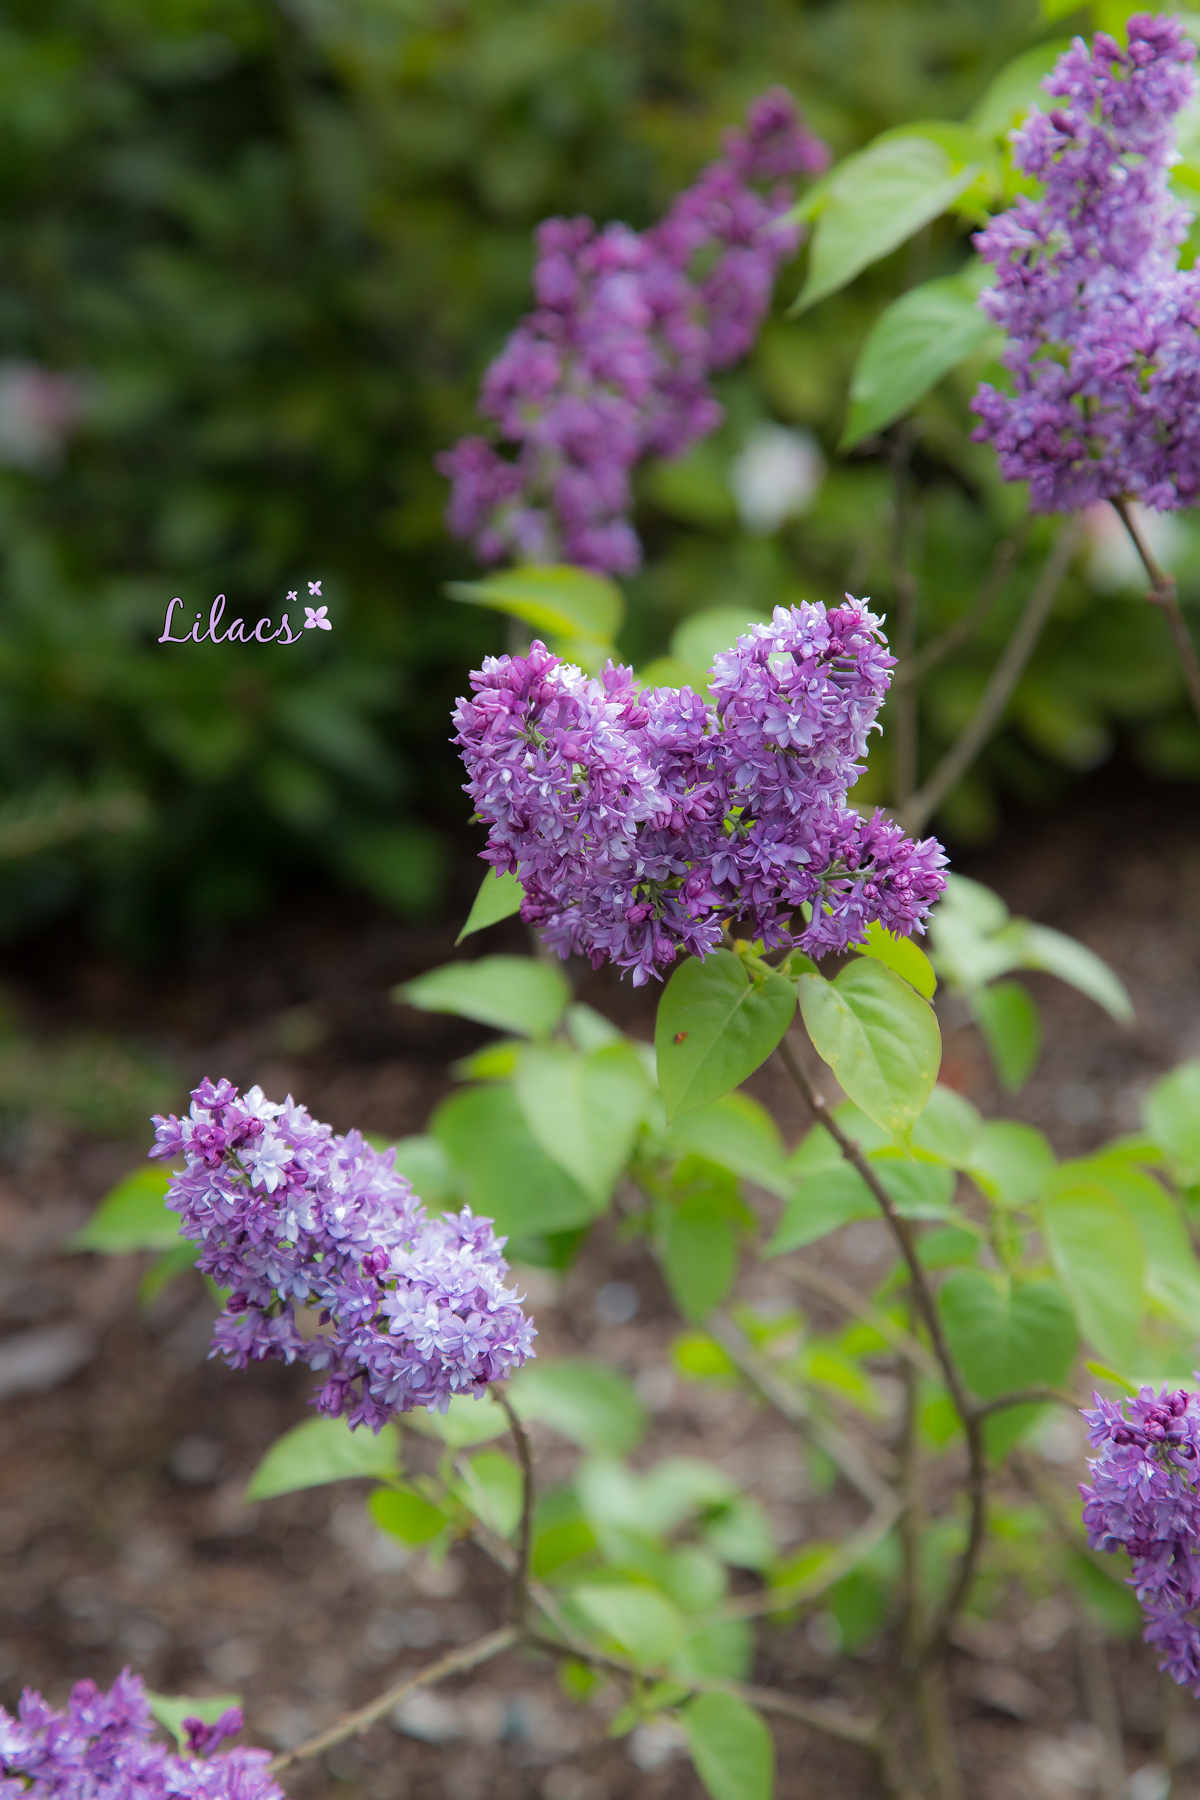 Lilacs in the forest via J5MM.com